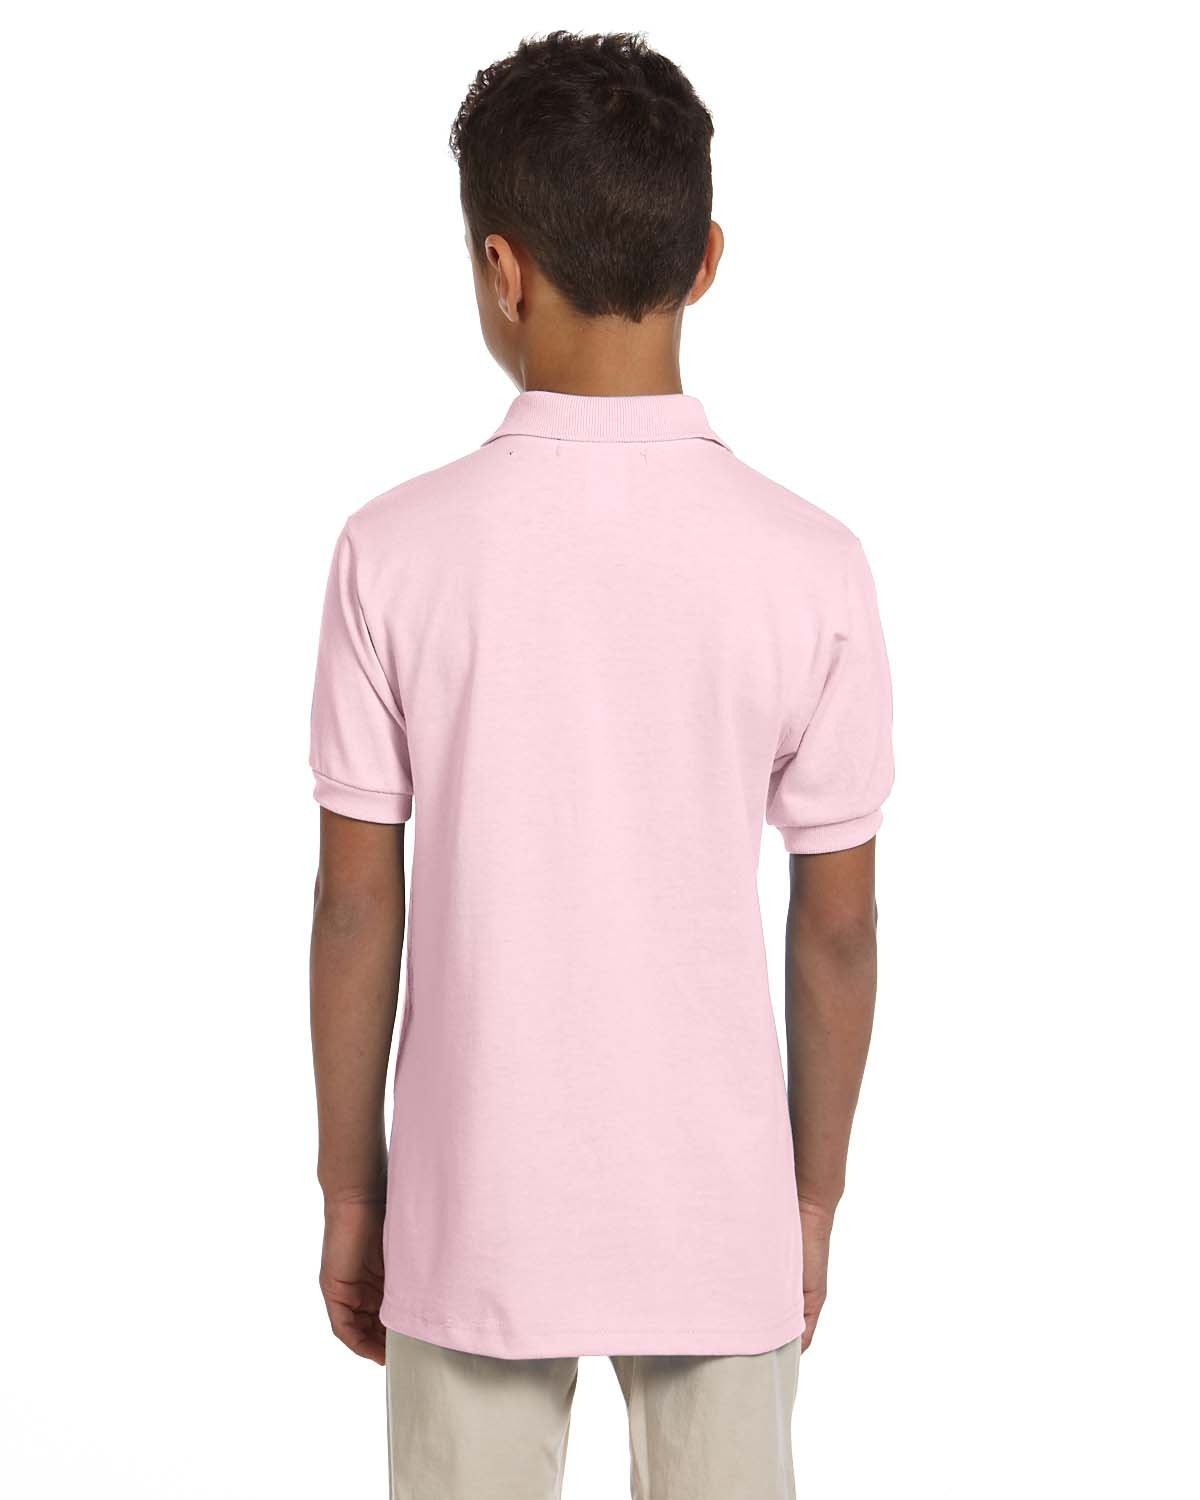 437Y Jerzees CLASSIC PINK